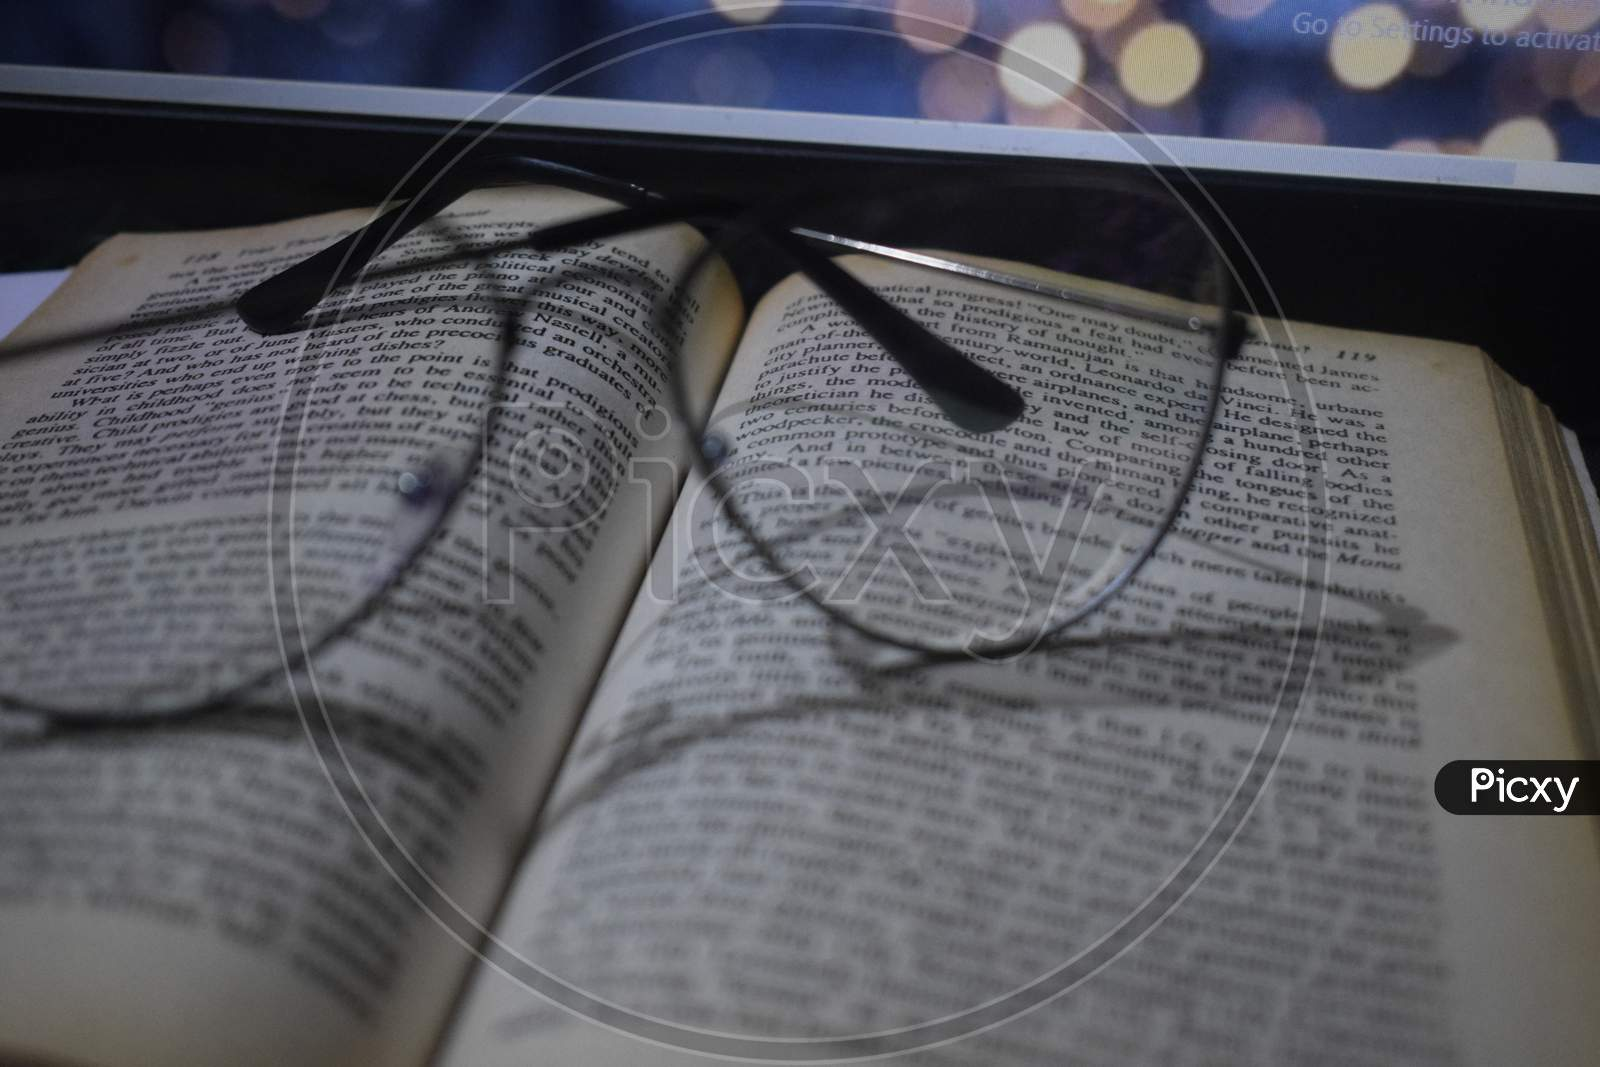 Glasses on book with laptop in background